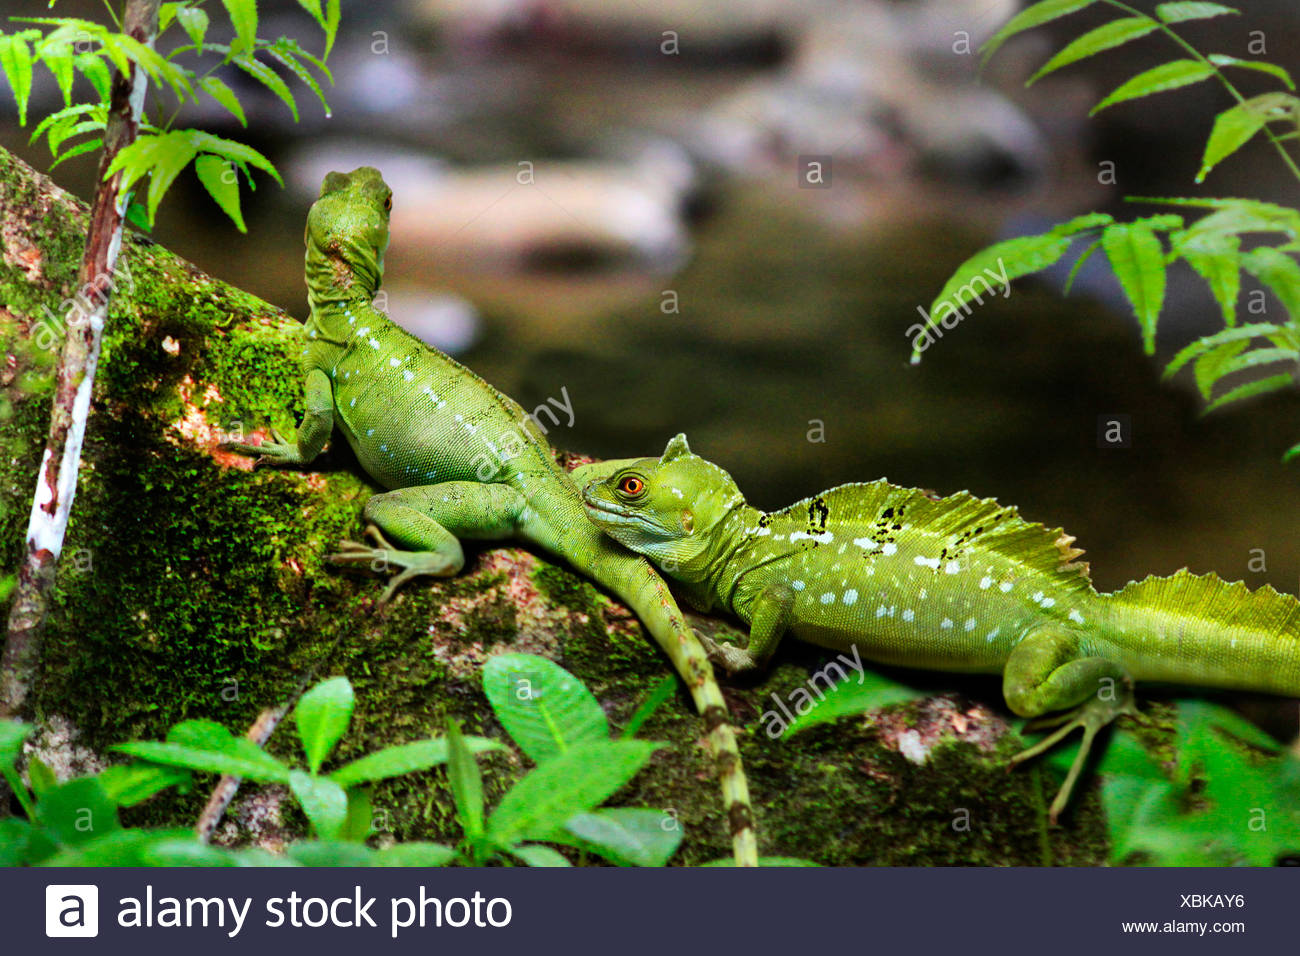 green basilisk, plumed basilisk, double-crested basilisk (Basiliscus plumifrons), two exemplars sitting on a mossy trunk in the tropical rain forest, Costa Rica - Stock Image